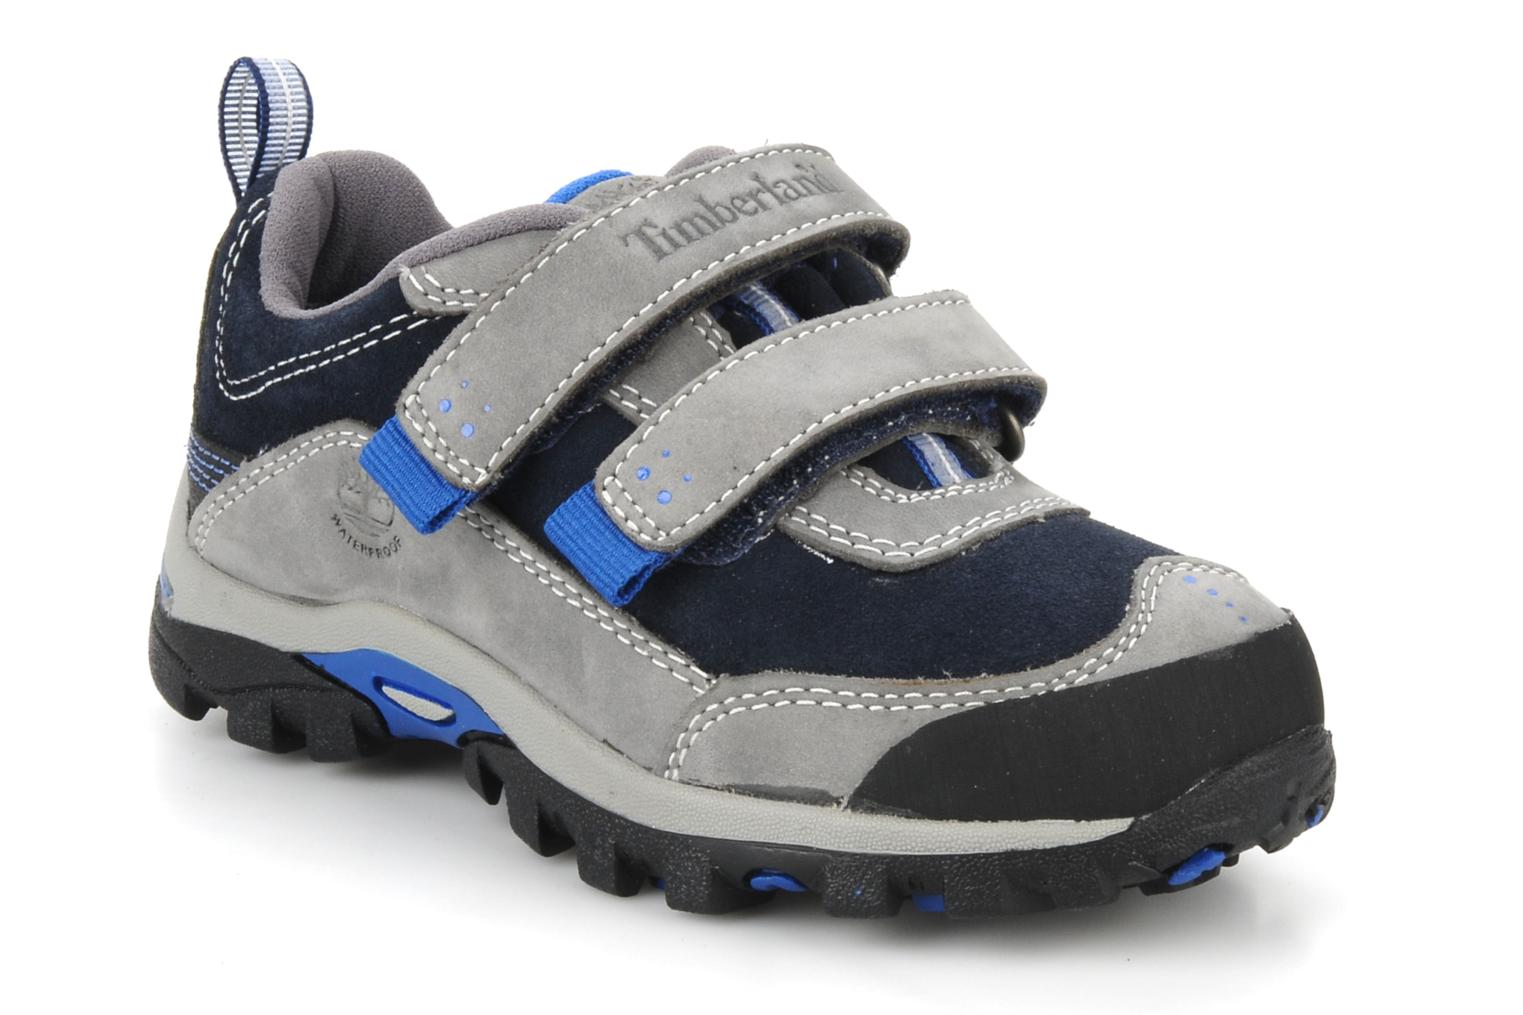 Hypertrail h&l wp oxford by timberland.